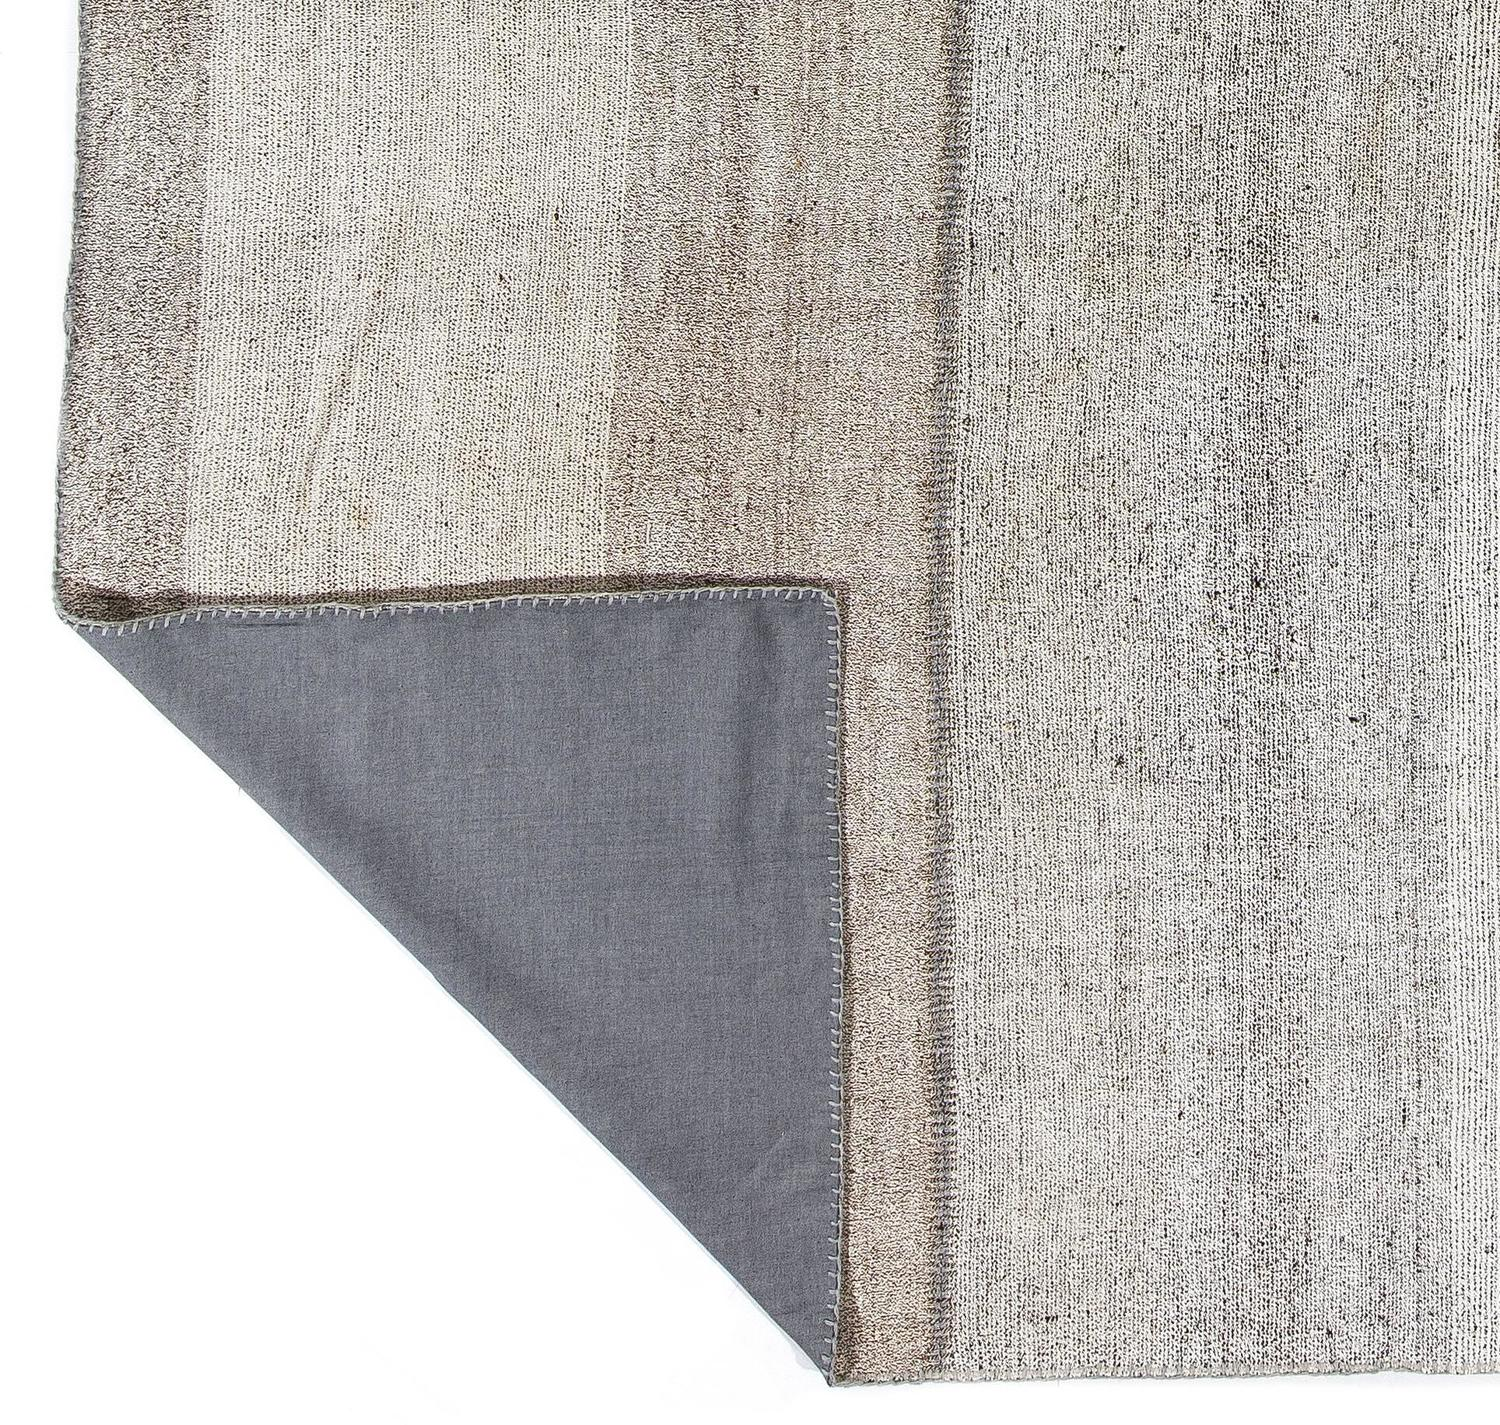 Cotton And Goat Wool Anatolian Flat-Weave Kilim Rug At 1stdibs